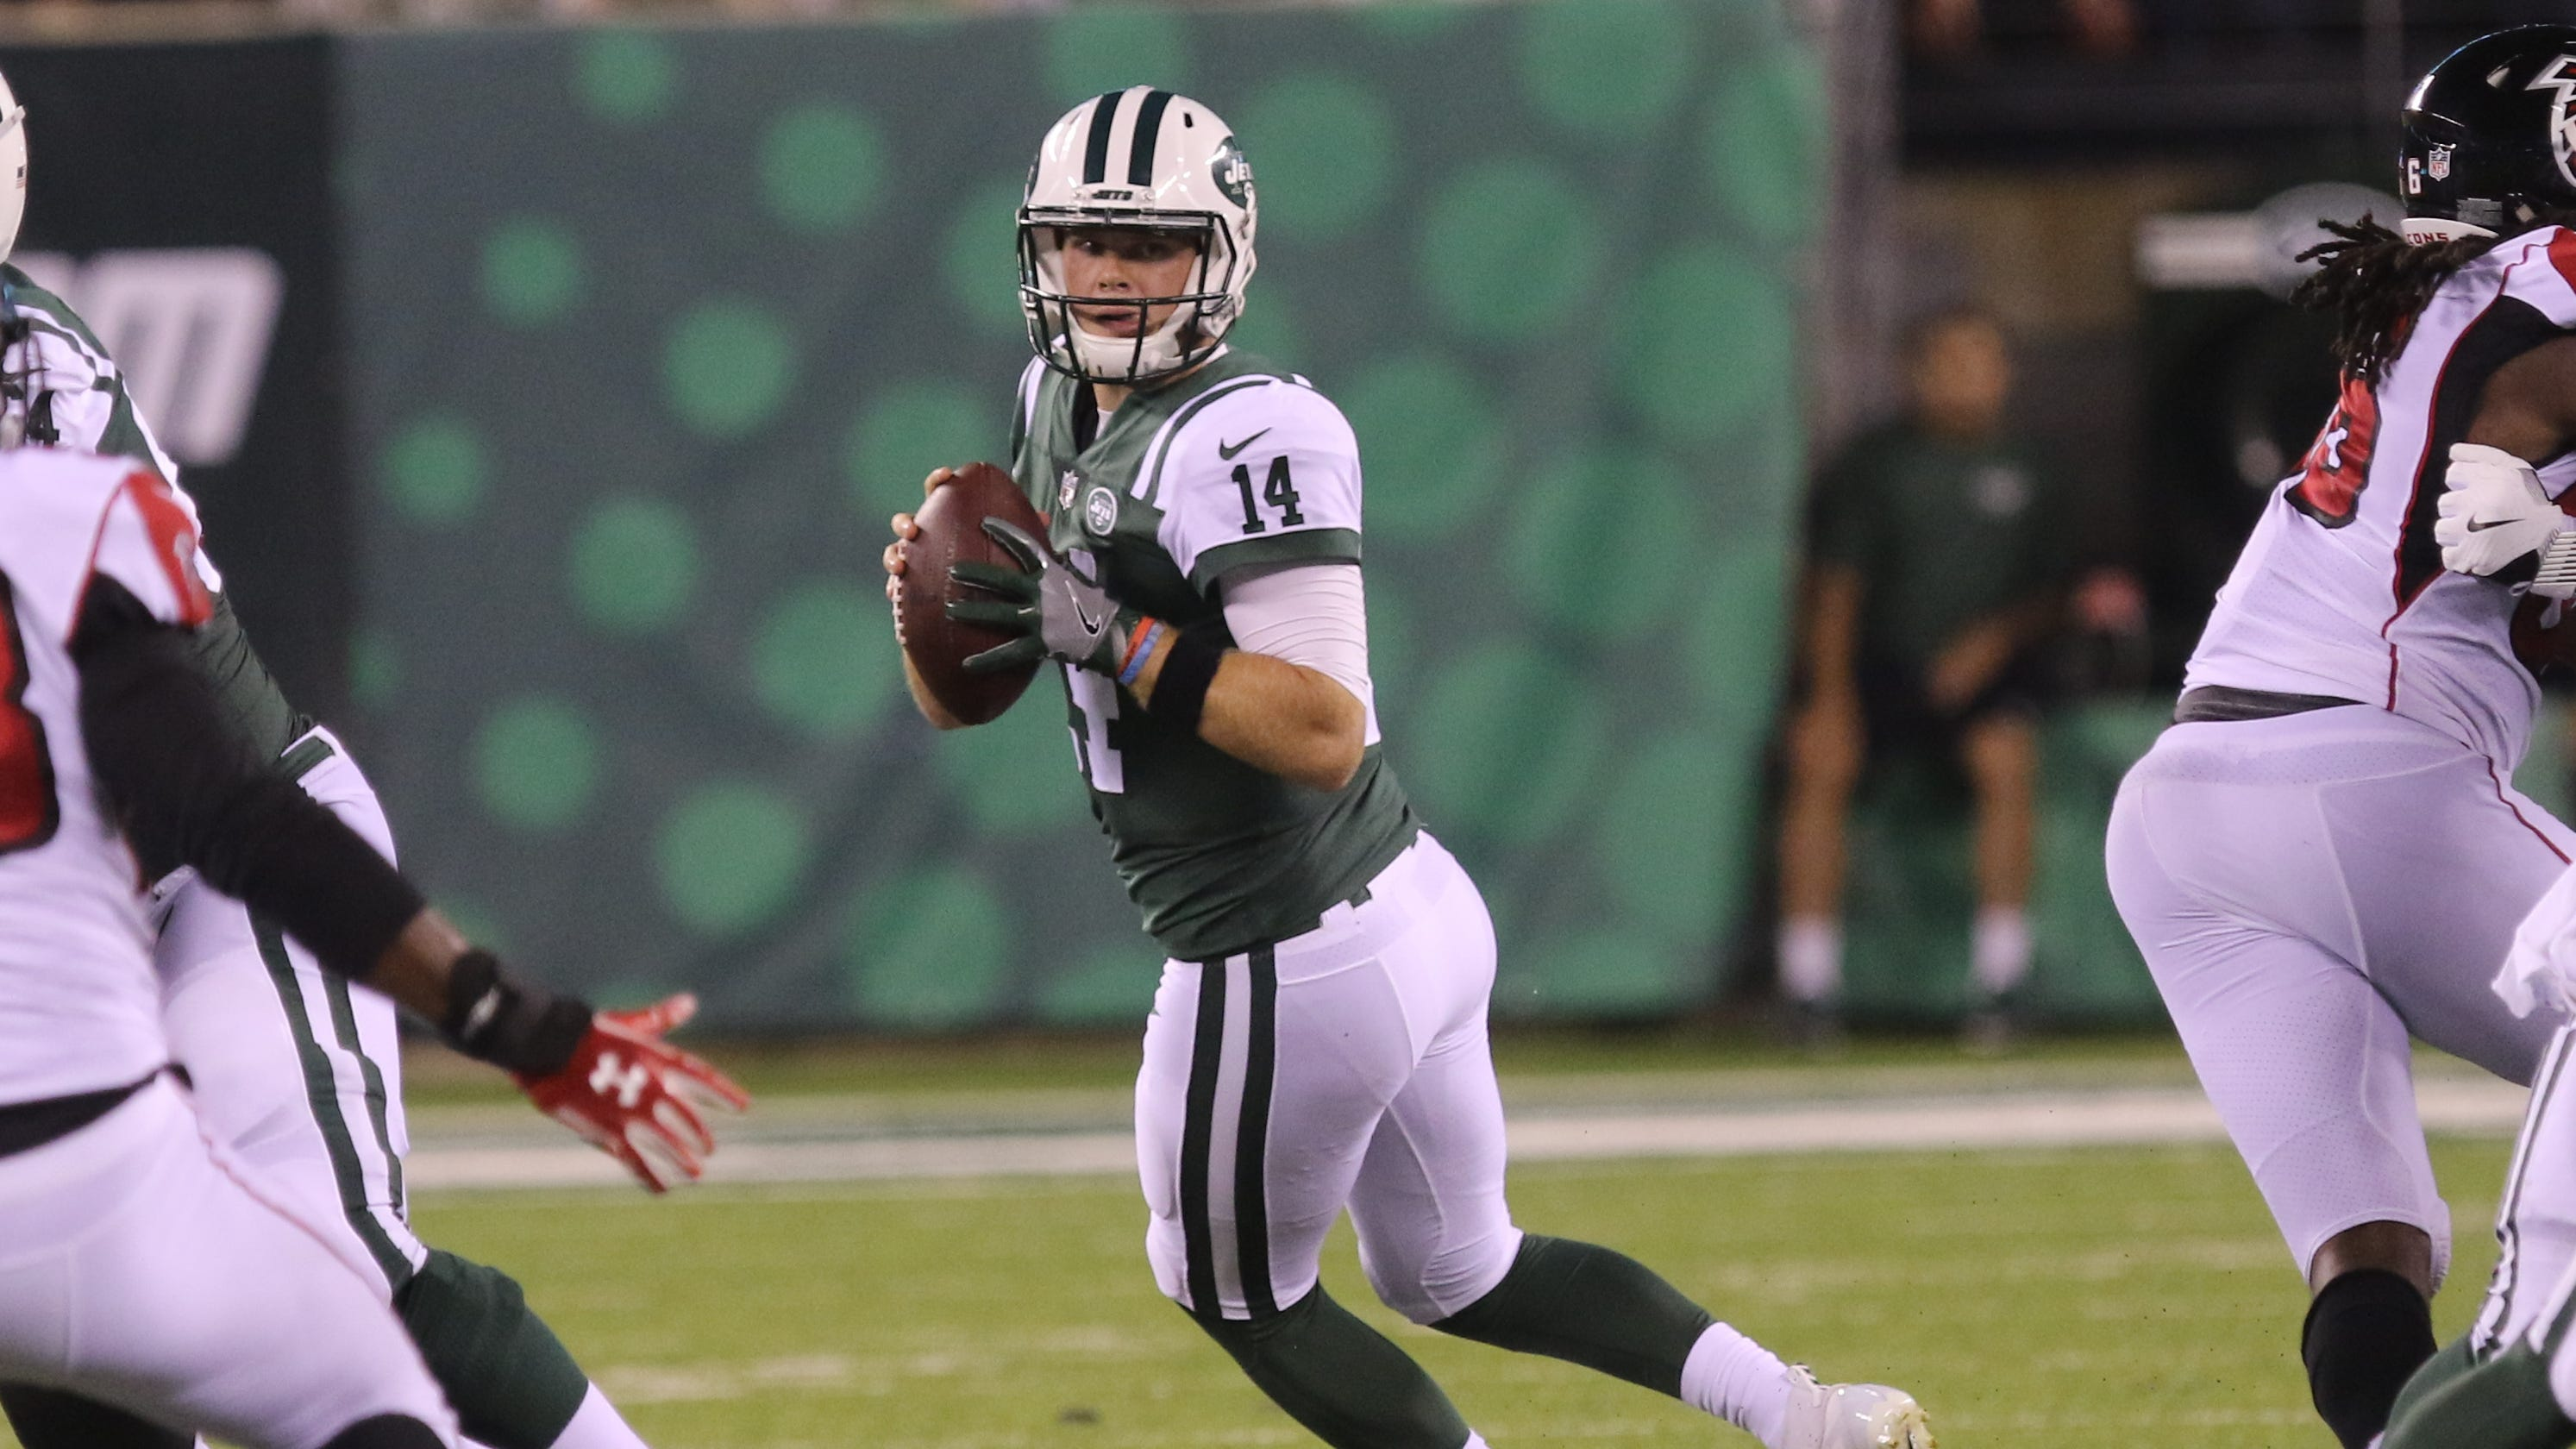 e61053bdc32 Sam Darnold makes Jets preseason debut, how did the NY Jets rookie look?